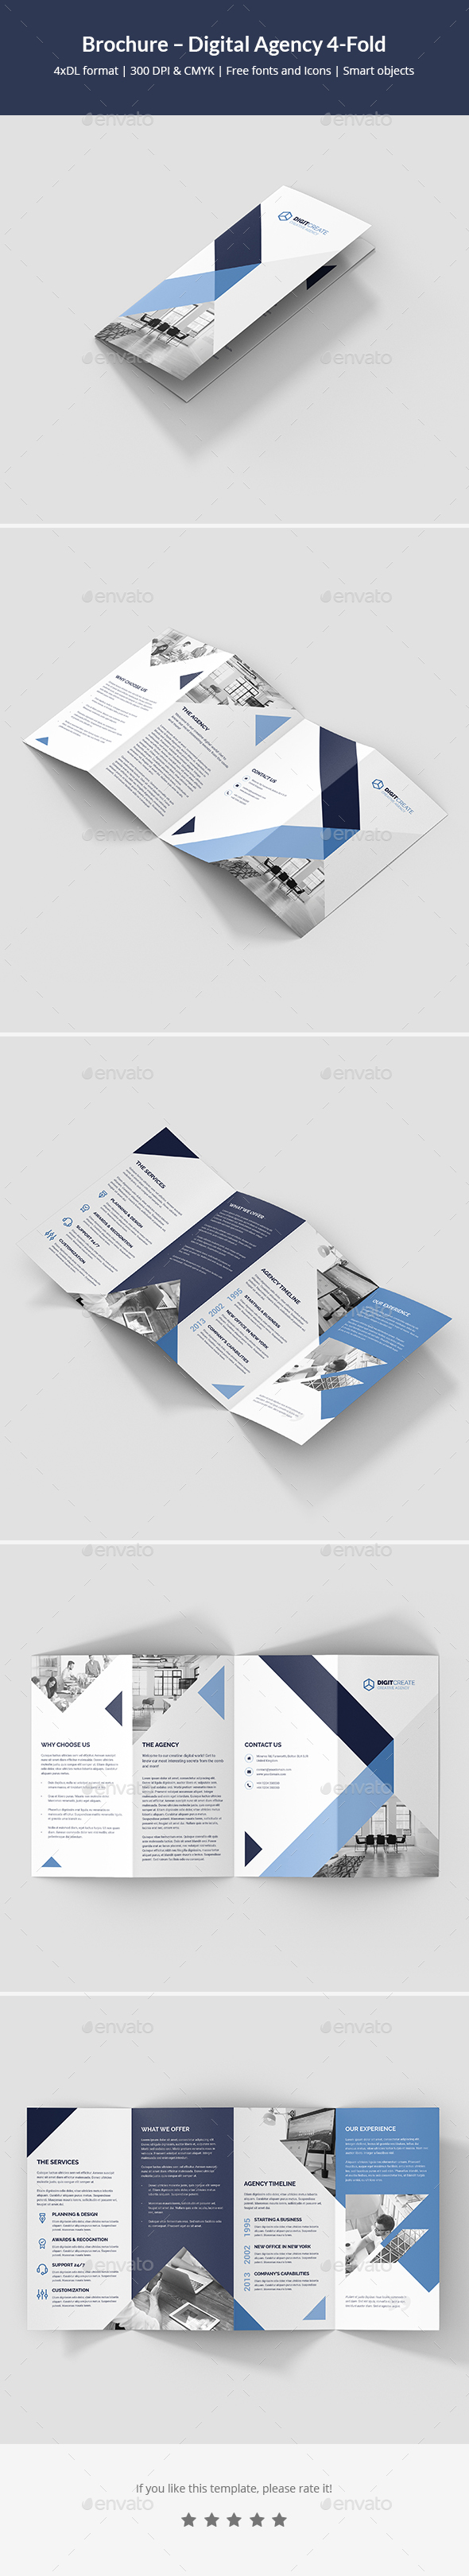 Brochure – Digital Agency 4-Fold - Corporate Brochures